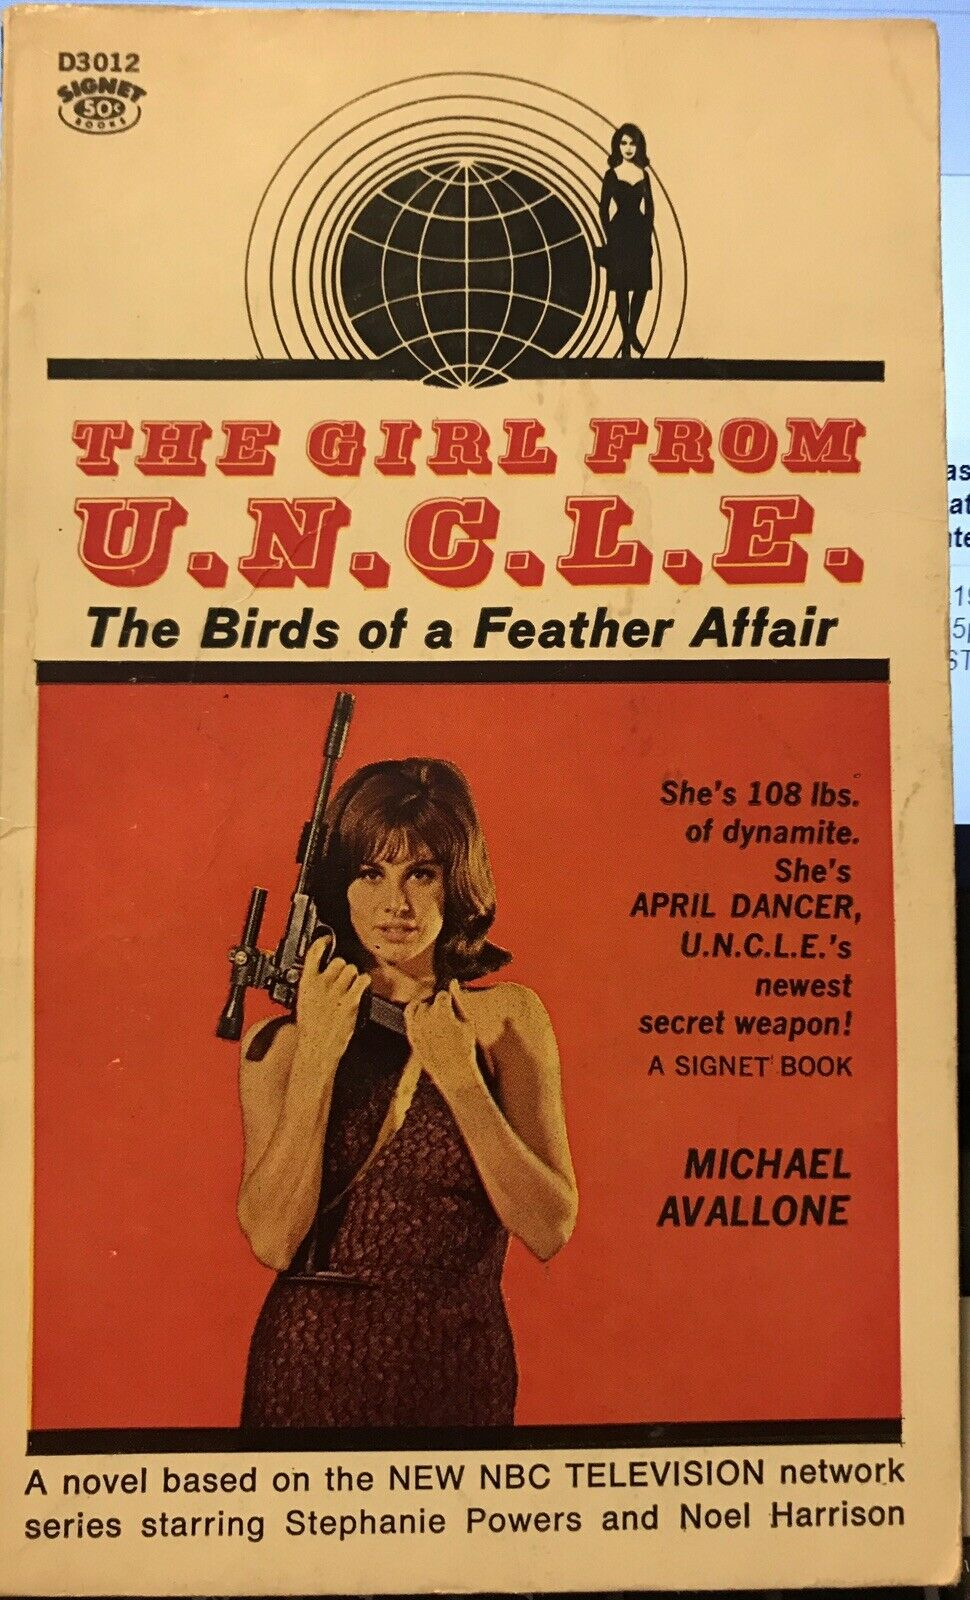 THE GIRL FROM U.N.C.L.E. by Michael Avallone ~ Signet Books #D3012 ~ SCARCE! |